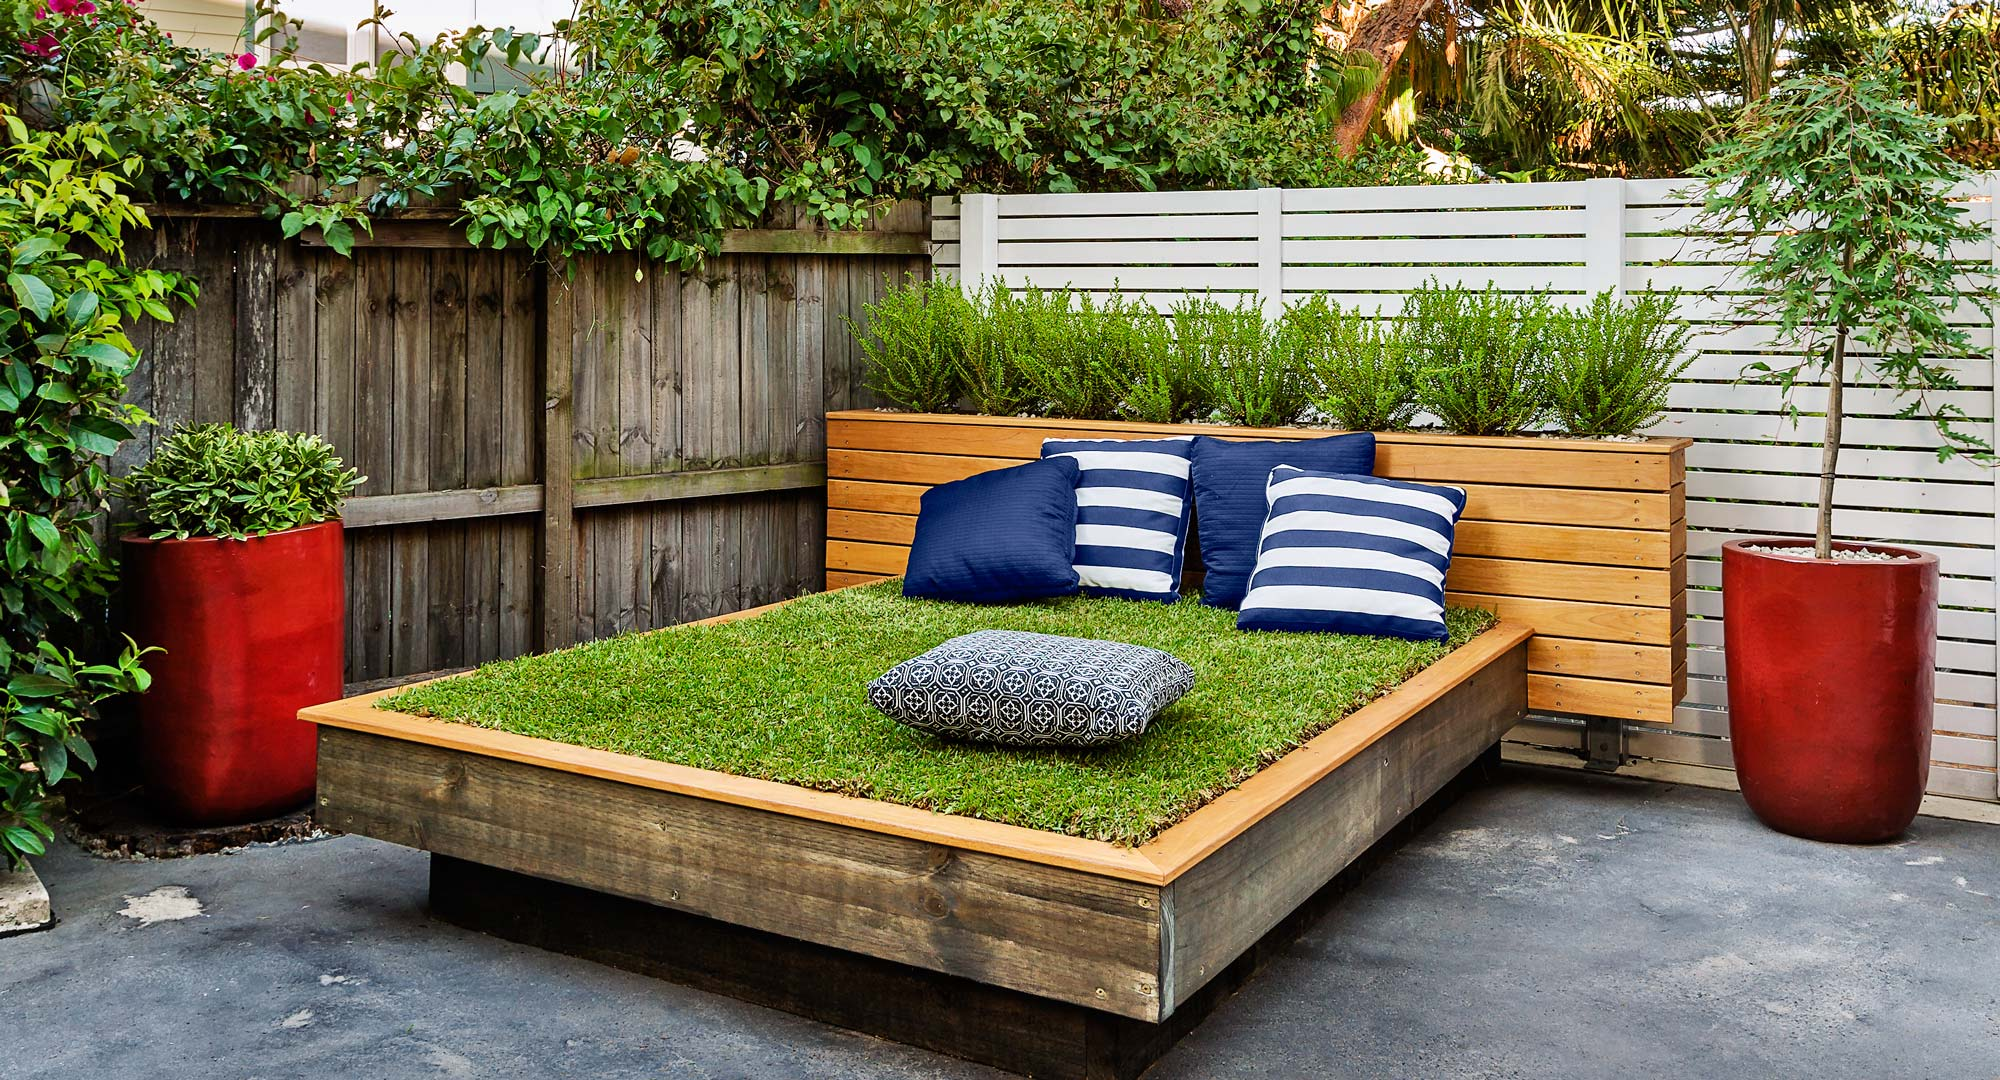 A sunny day bed fit for the gods diy gardening craft Bhg australia